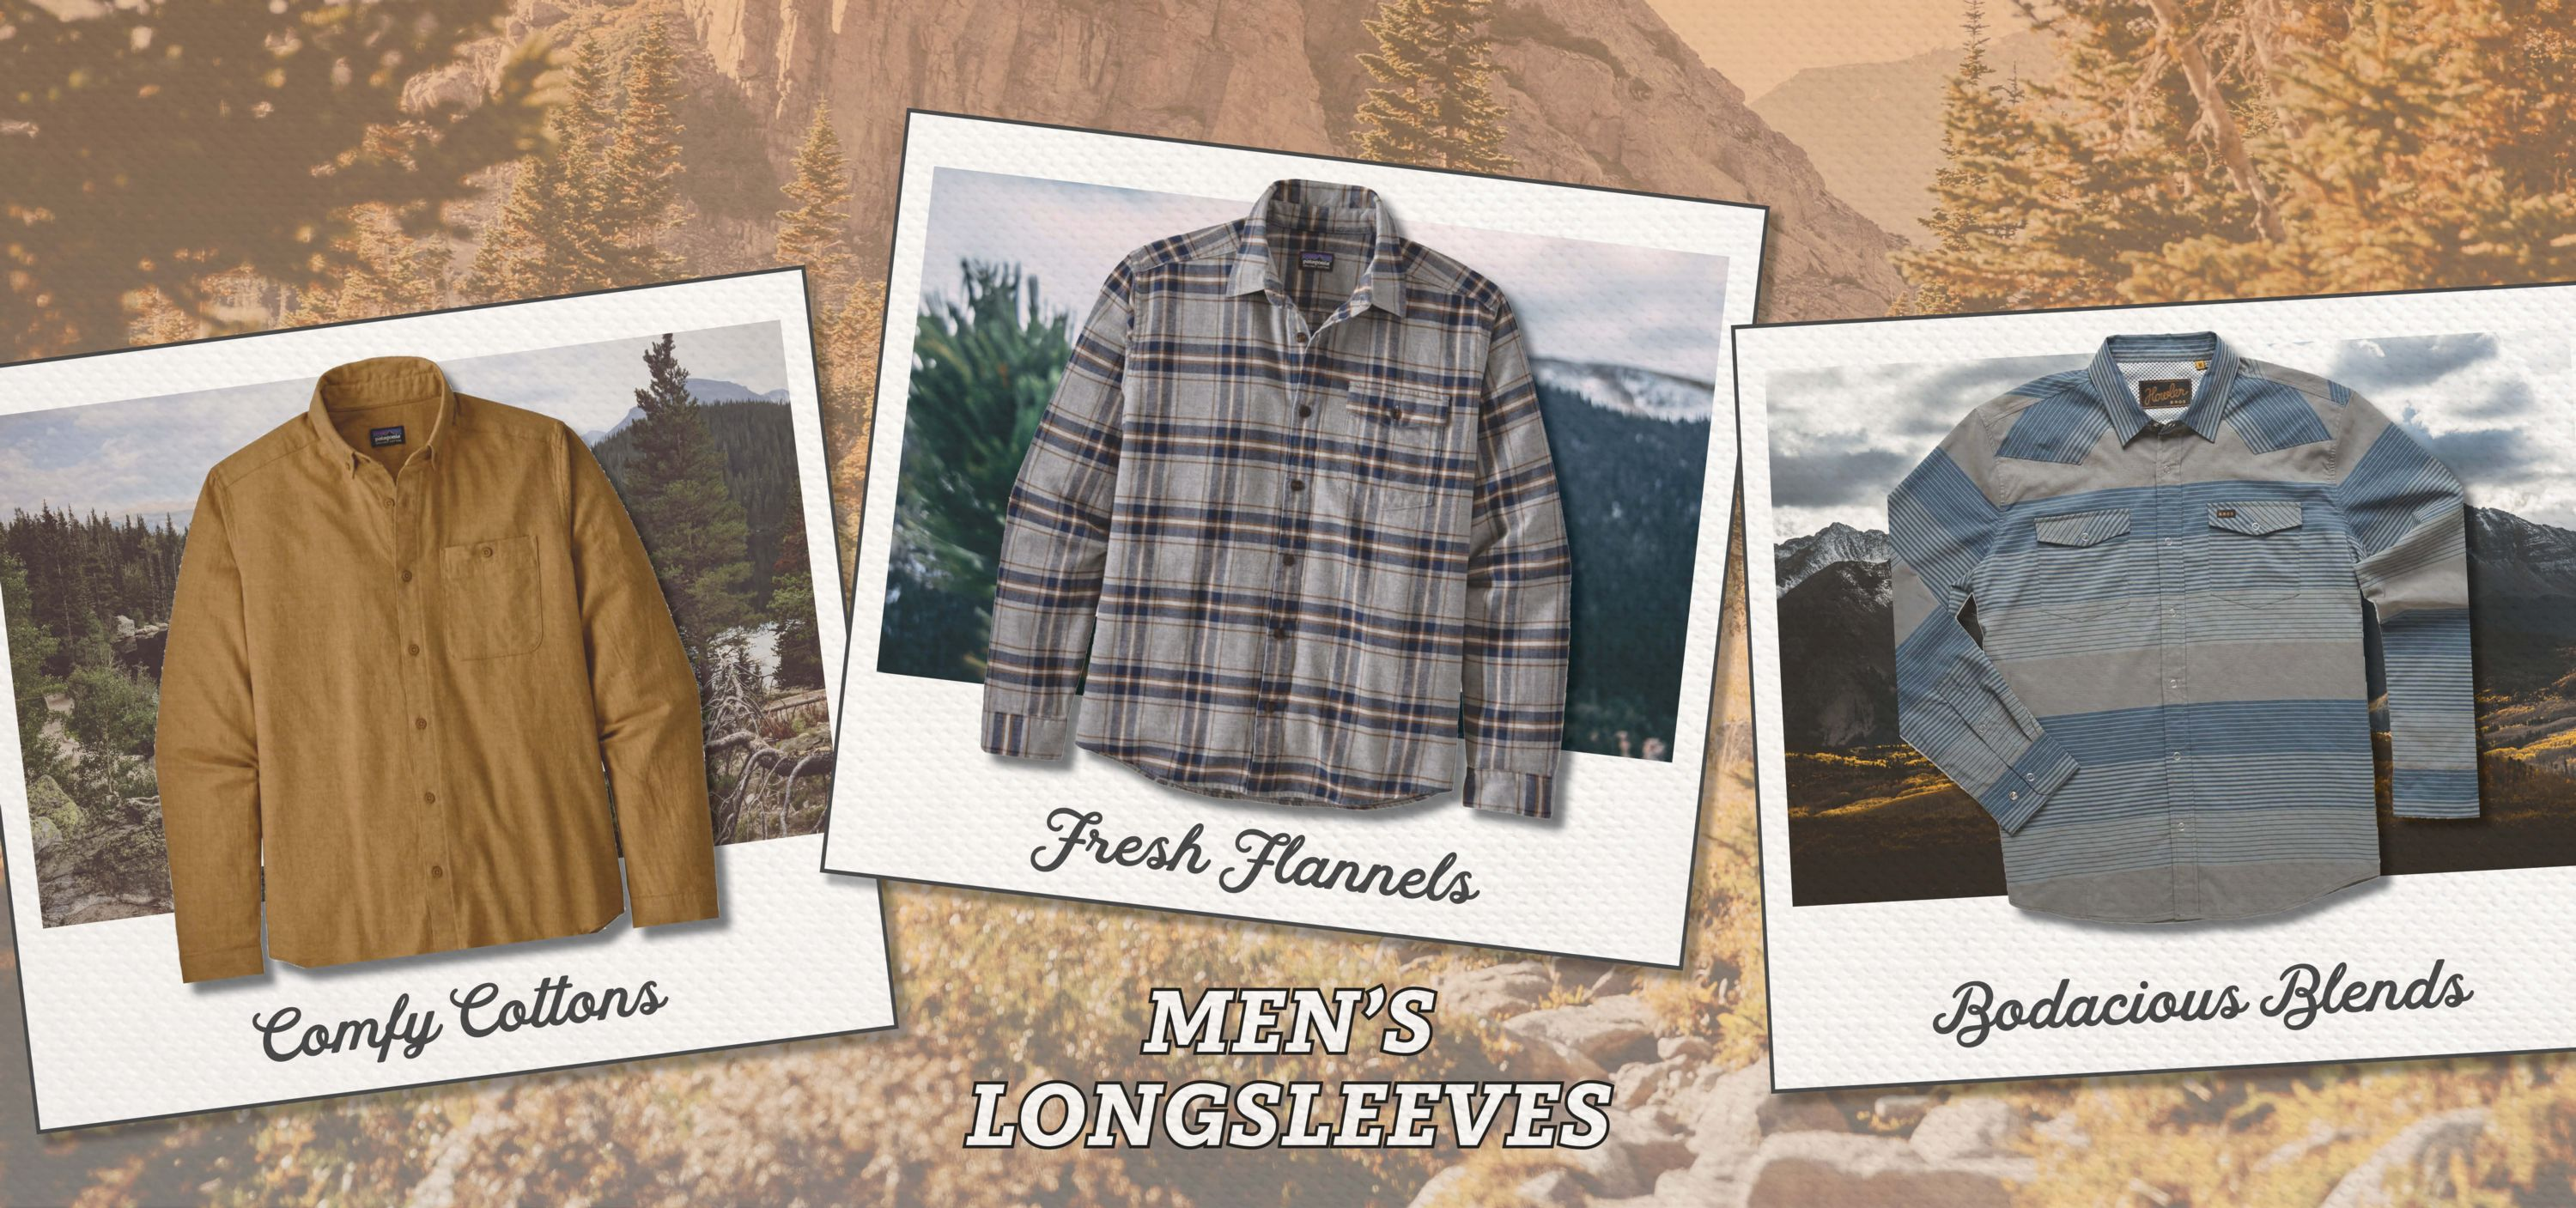 Three Men's Longsleeve Shirts in polaroid type pictures overlaid on mountain views.